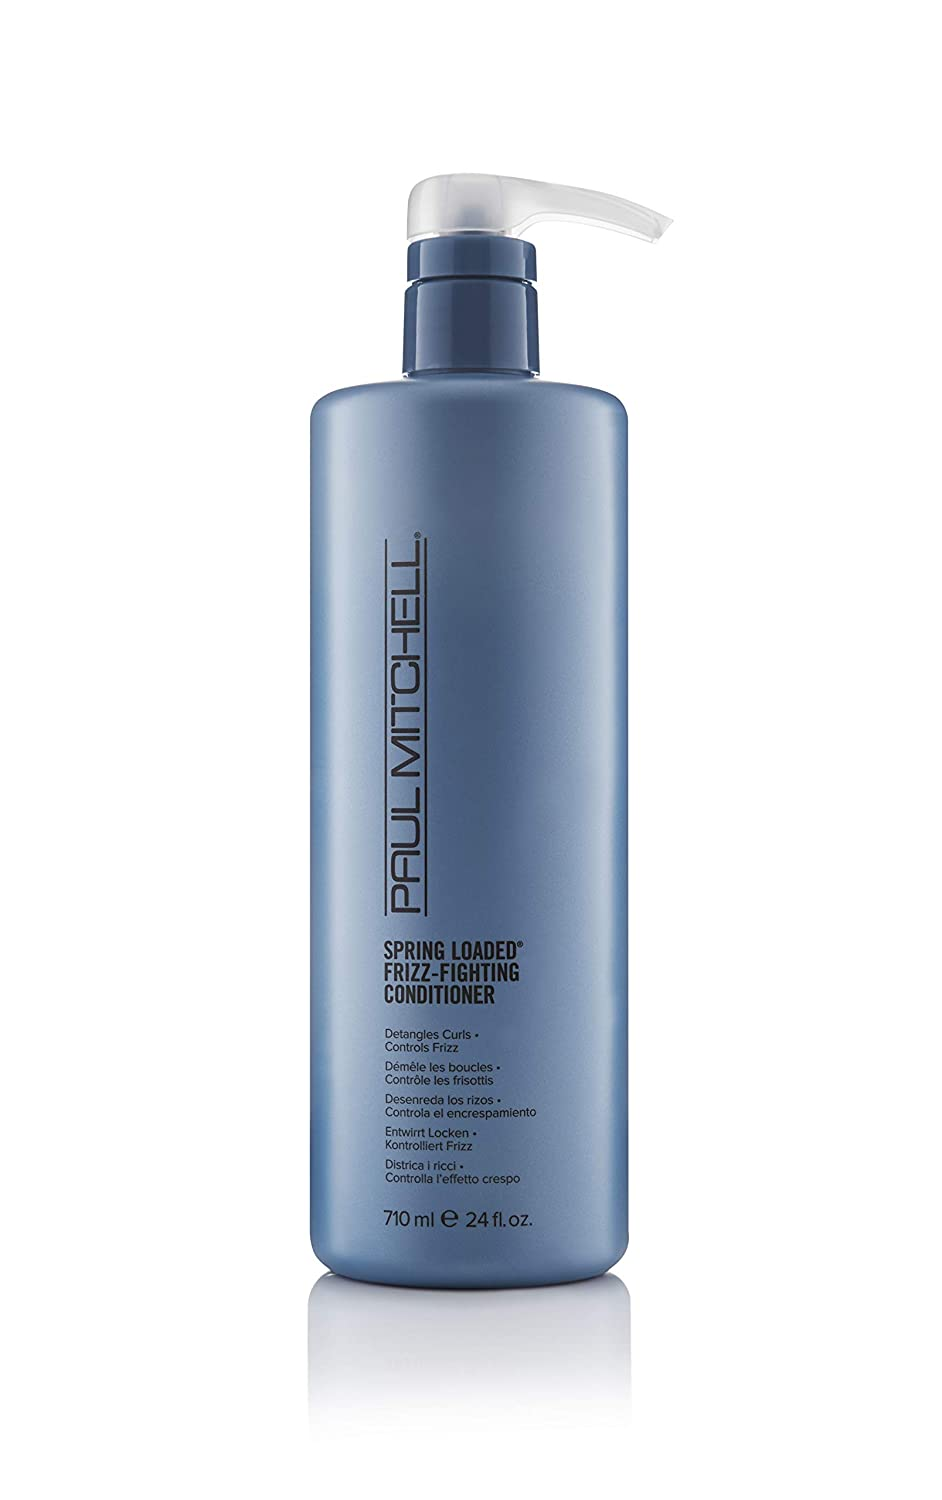 Paul Mitchell Spring Loaded Frizz Fighting Conditioner, 24 Fl Oz